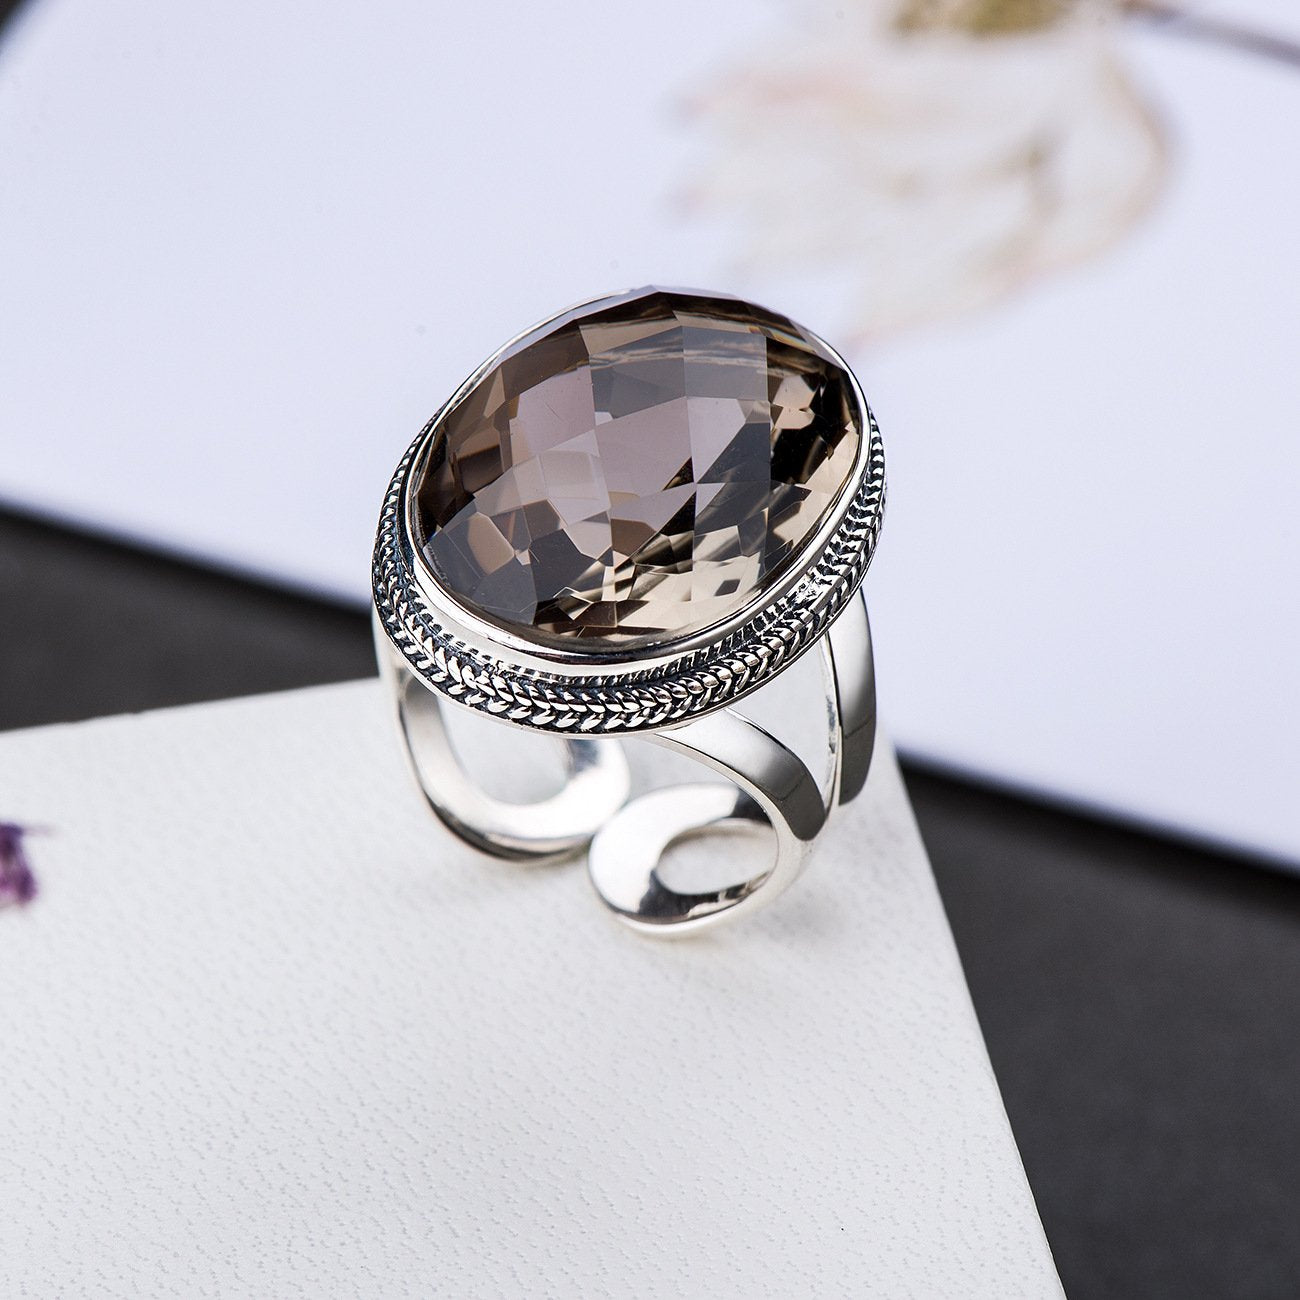 Gorgeous Tawny Crystal Adjustable Ring